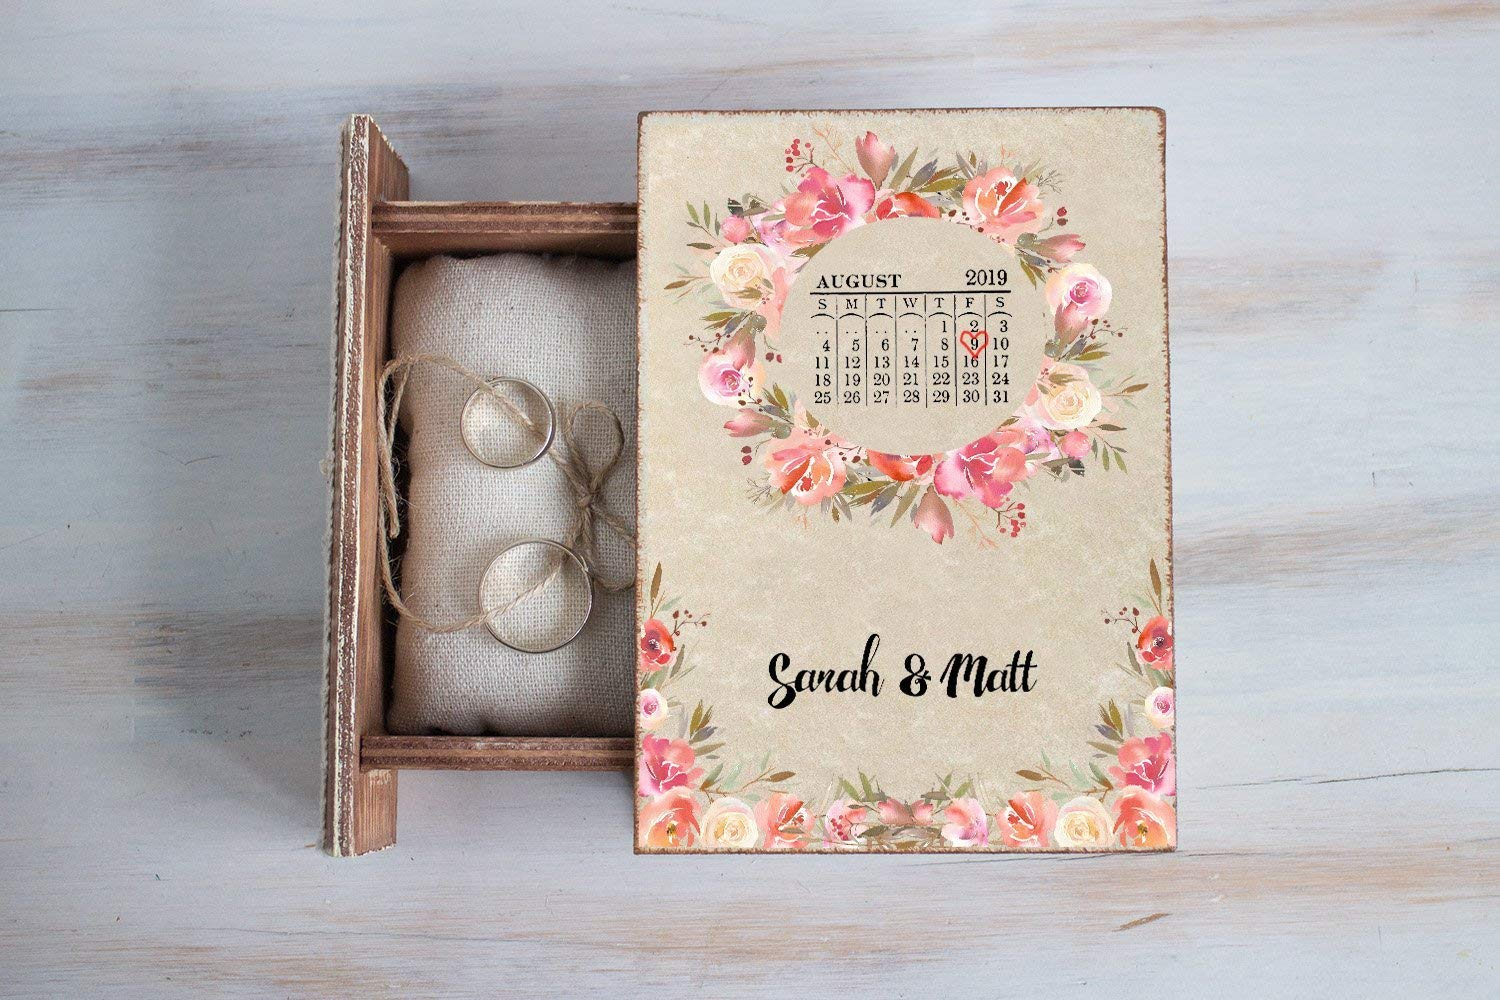 Personalized wedding Manufacturer regenerated Boston Mall product box Wedding ring Wreath R Floral